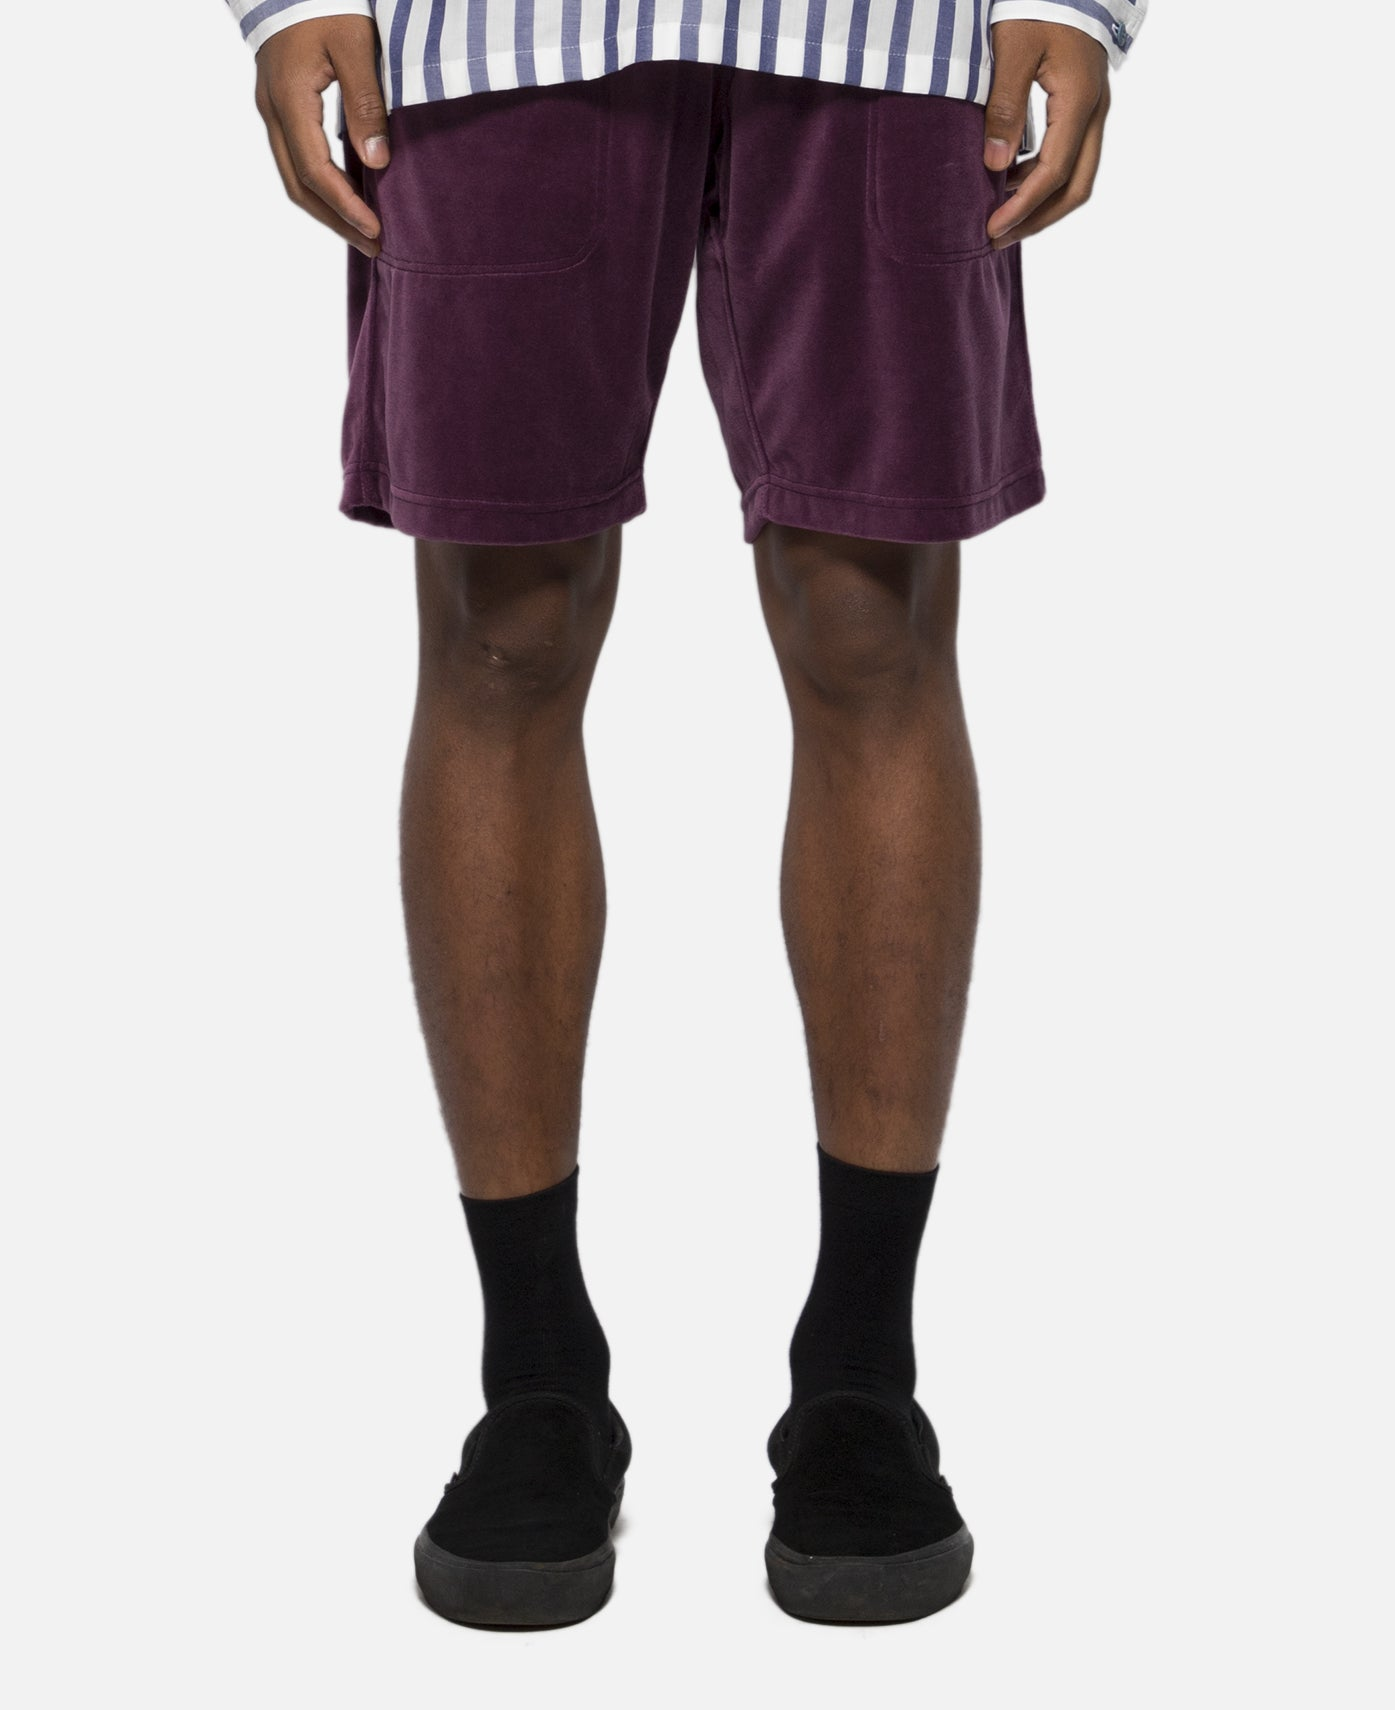 Velor Sweat Shorts (Purple)